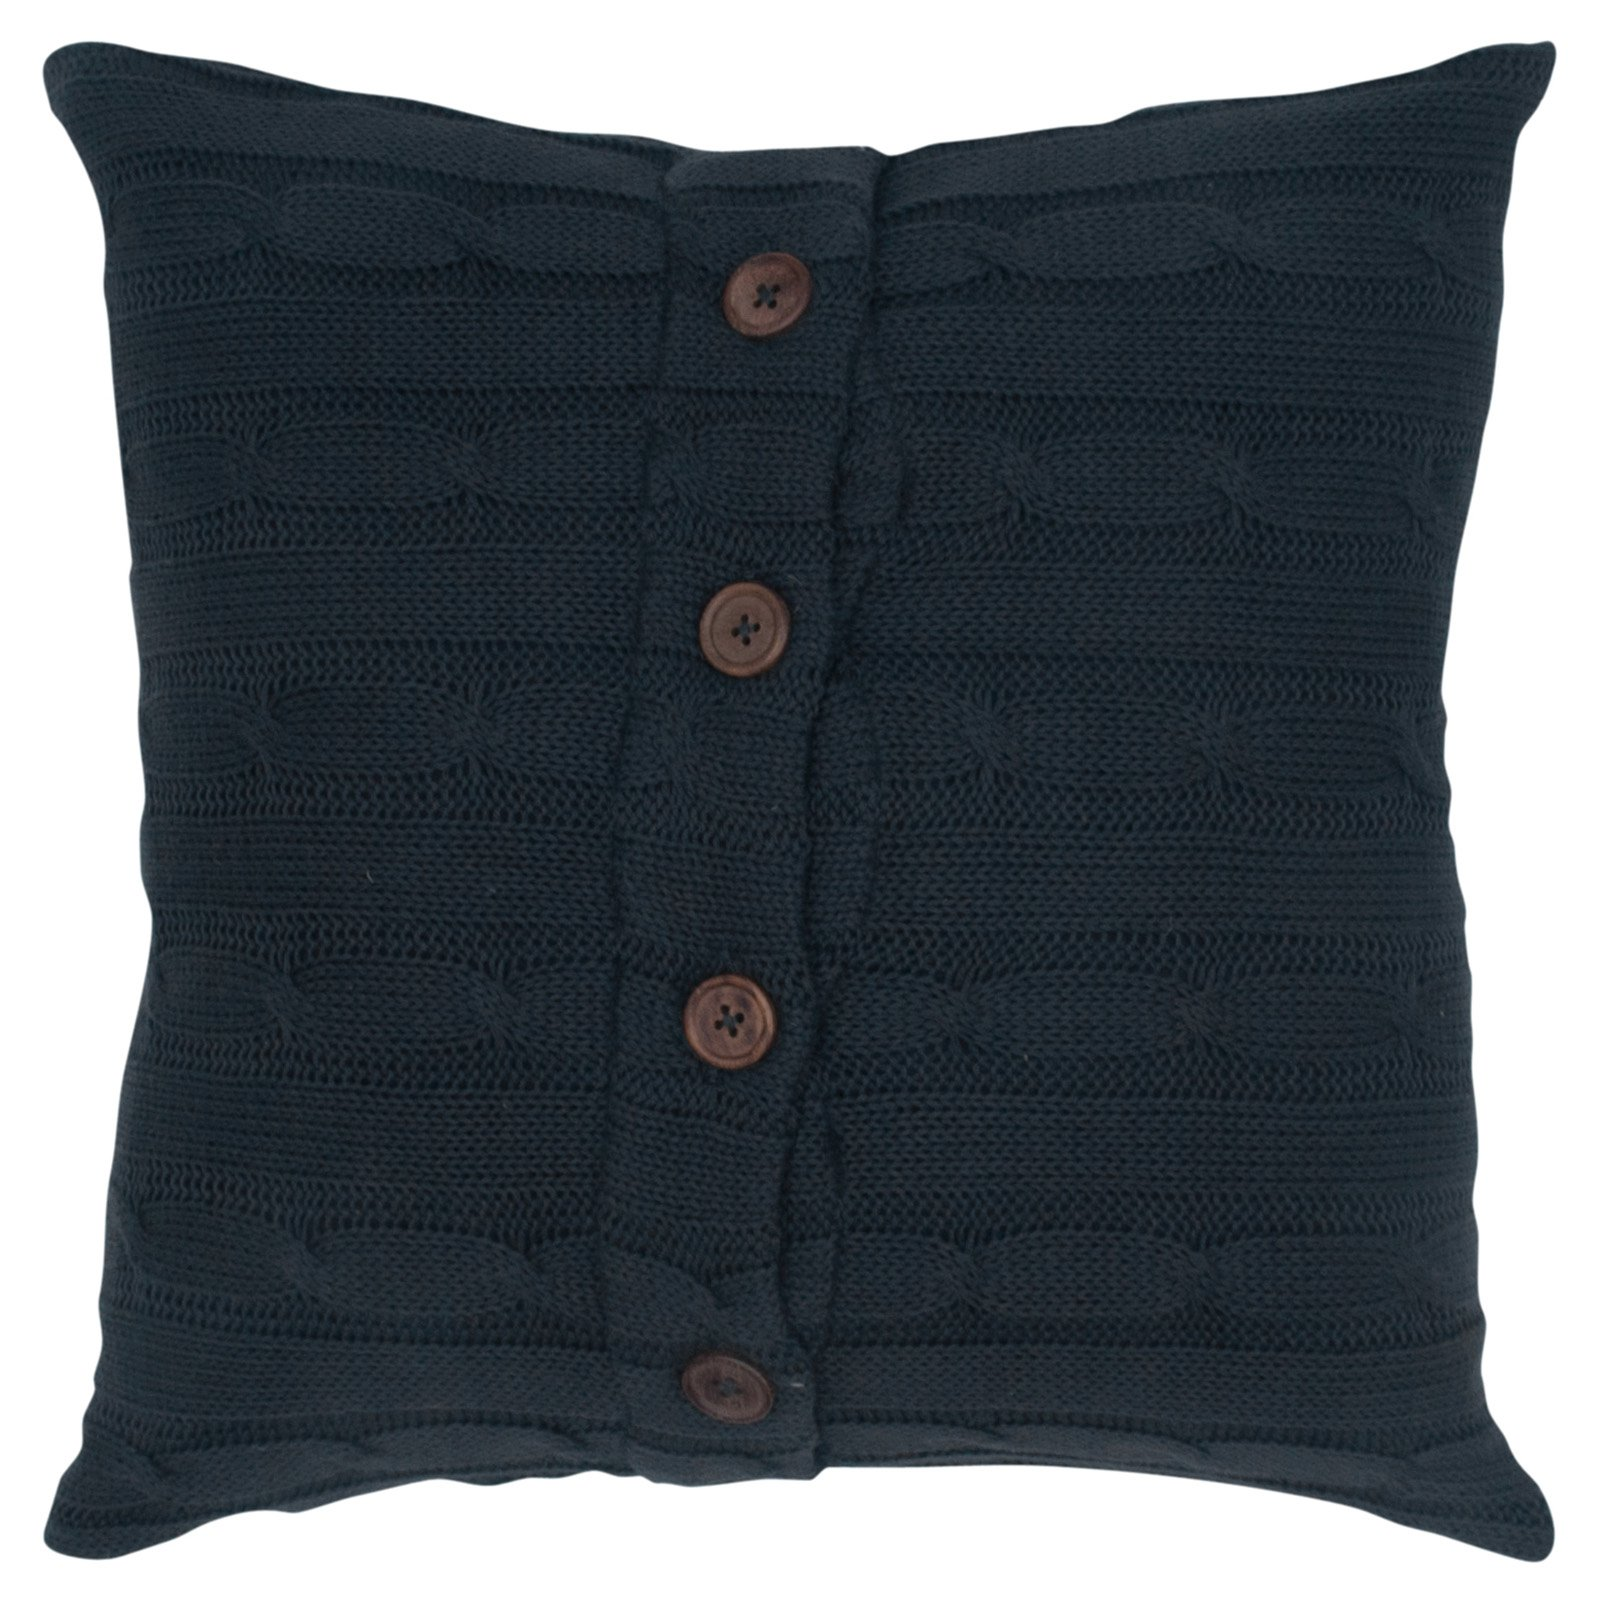 """Rizzy Home Cable Knit Buttoned Back Cotton Decorative Throw Pillow, 18"""" x 18"""", Mocha"""